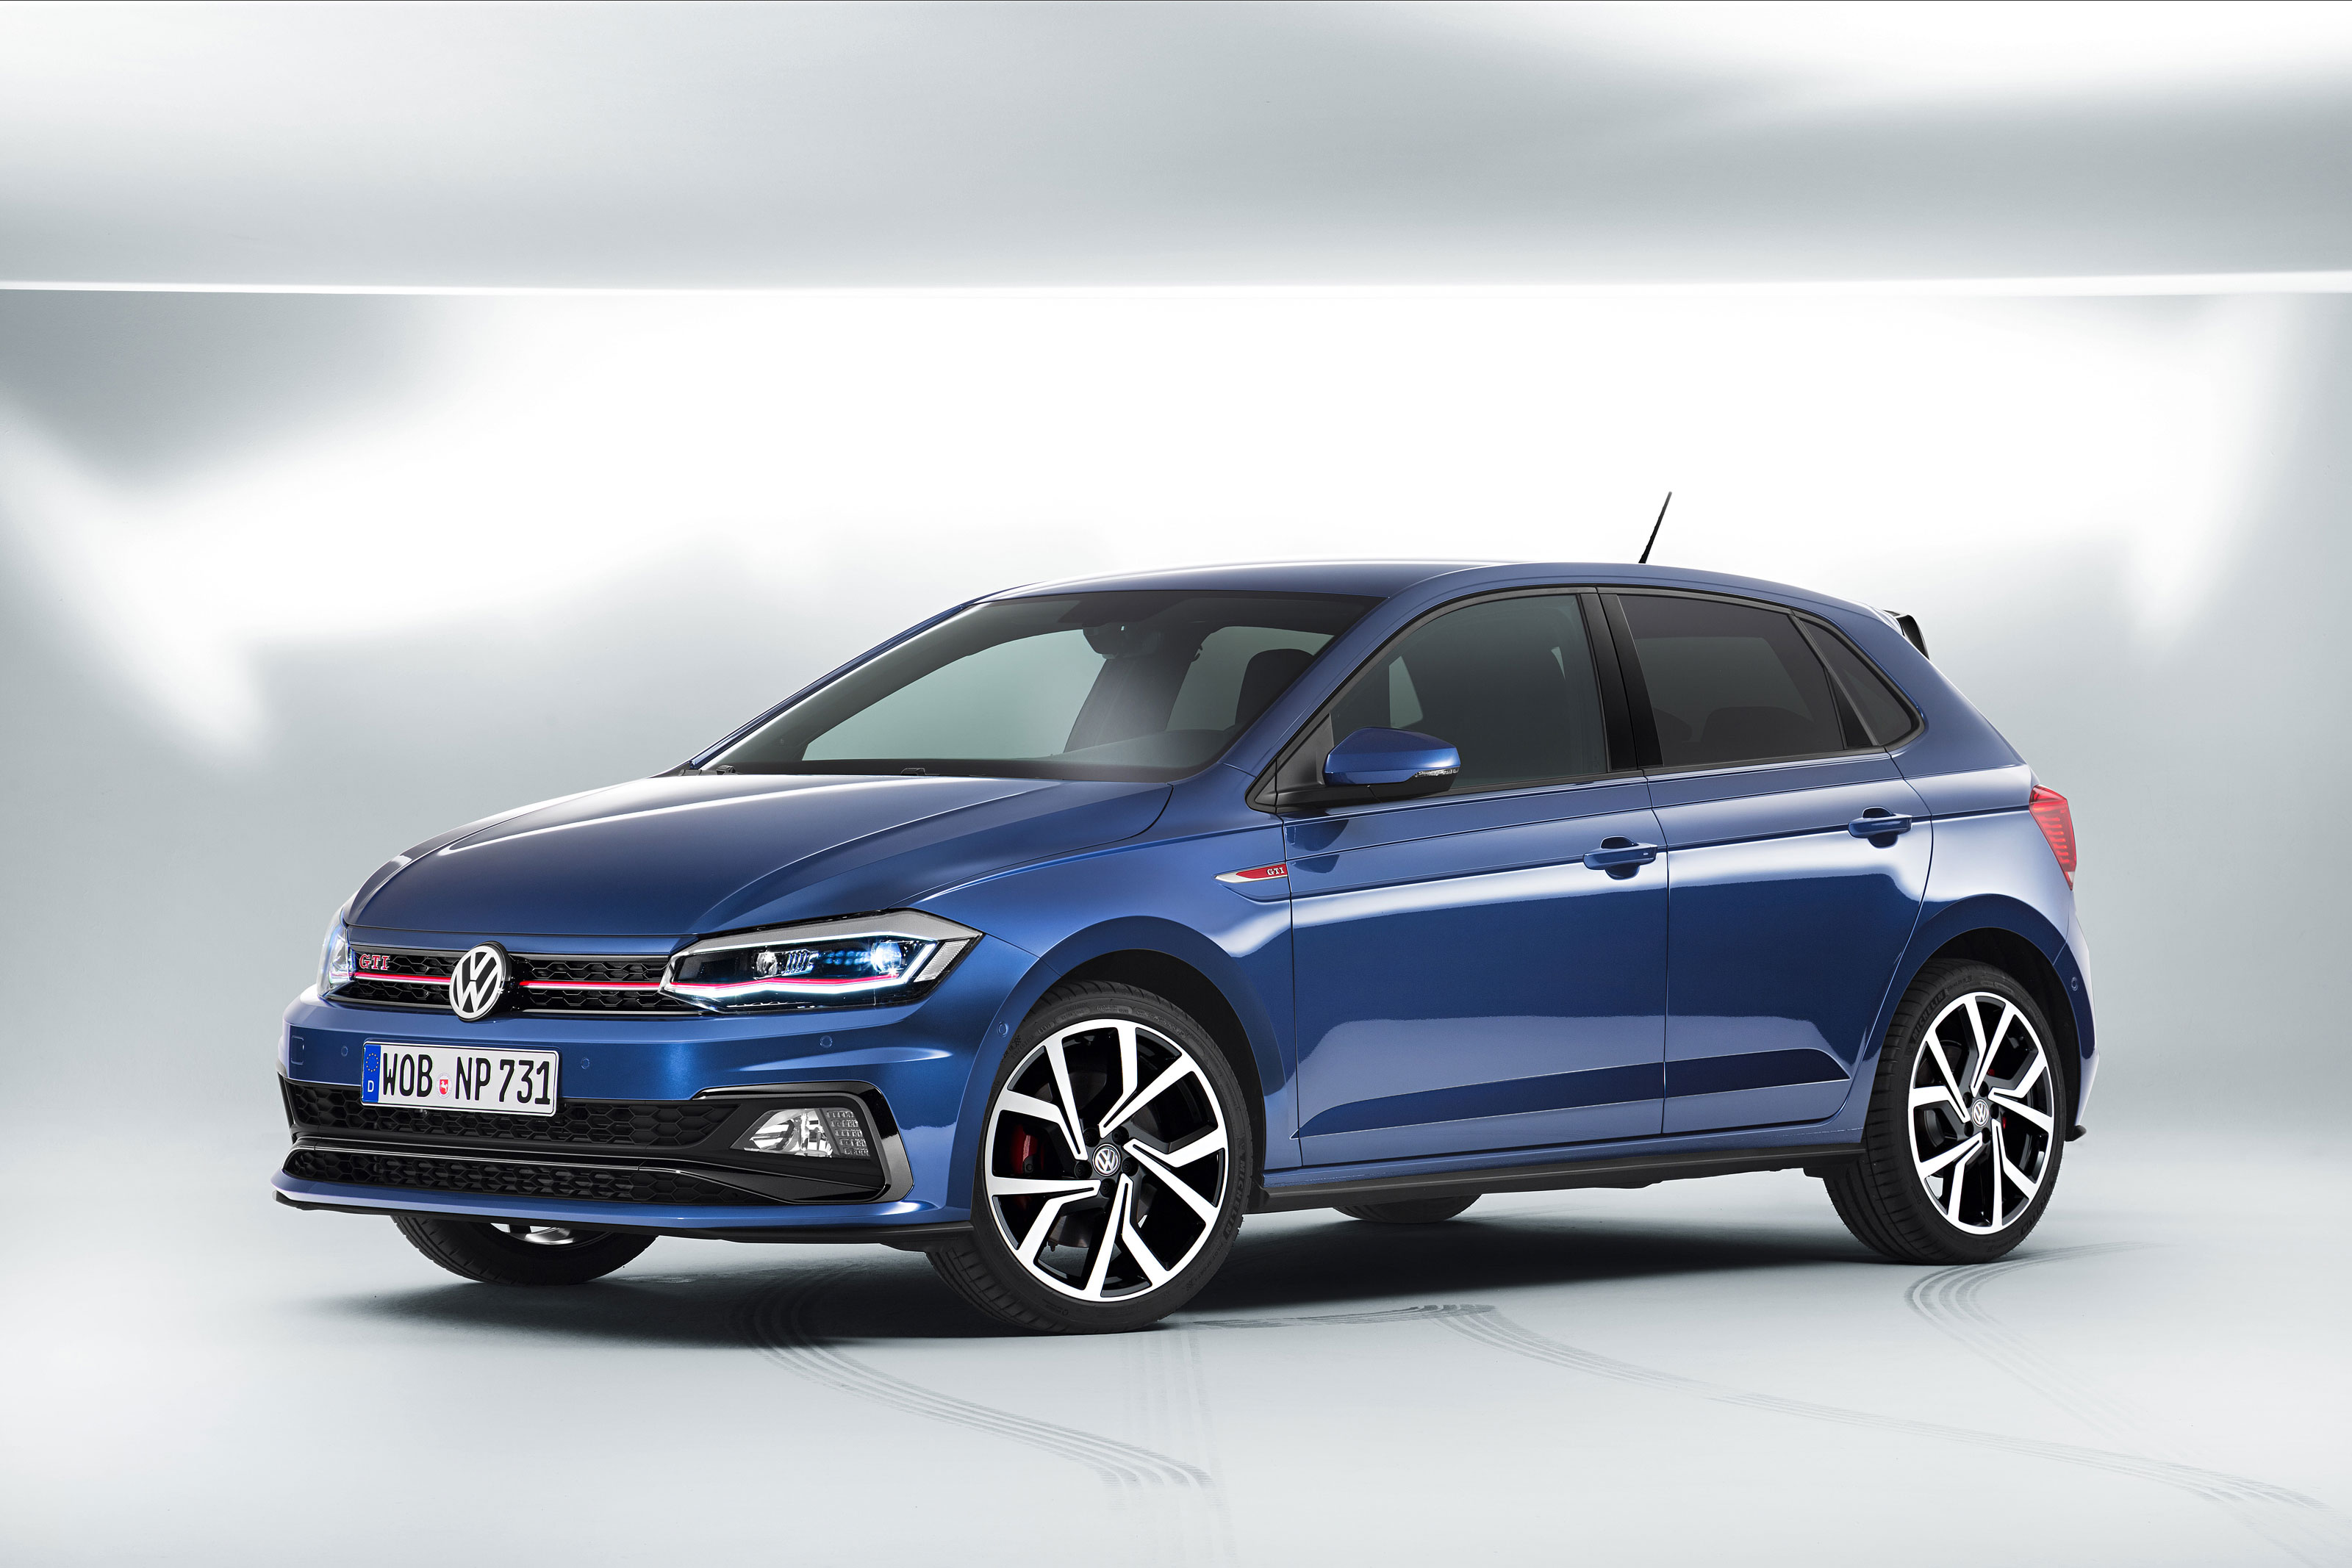 All New Volkswagen Polo Gti Revealed Alongside Rest Of New Polo Range Pictures Evo